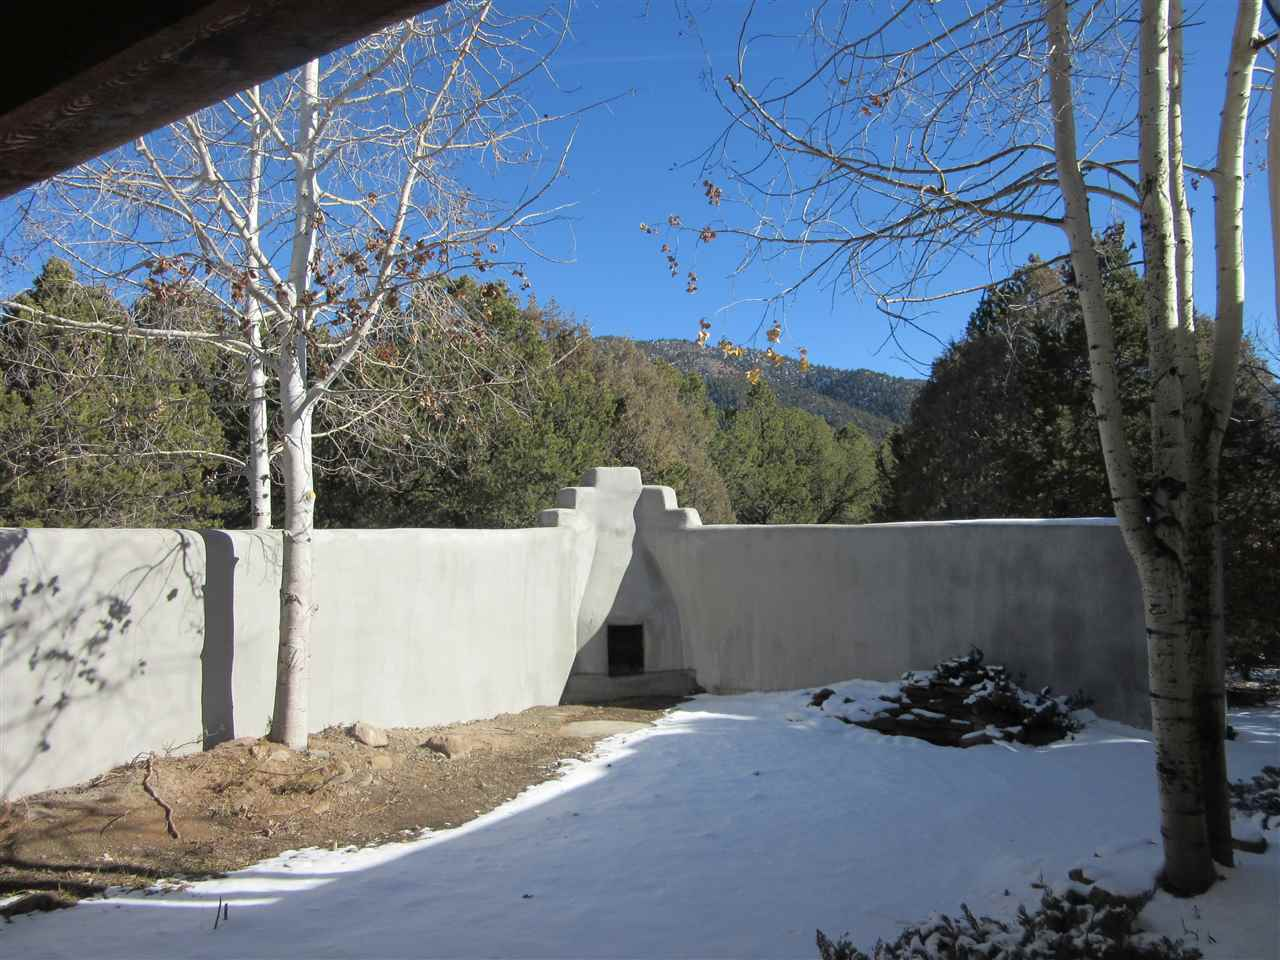 http://search.taosmls.net/taos_mls/images/101028-16.JPG